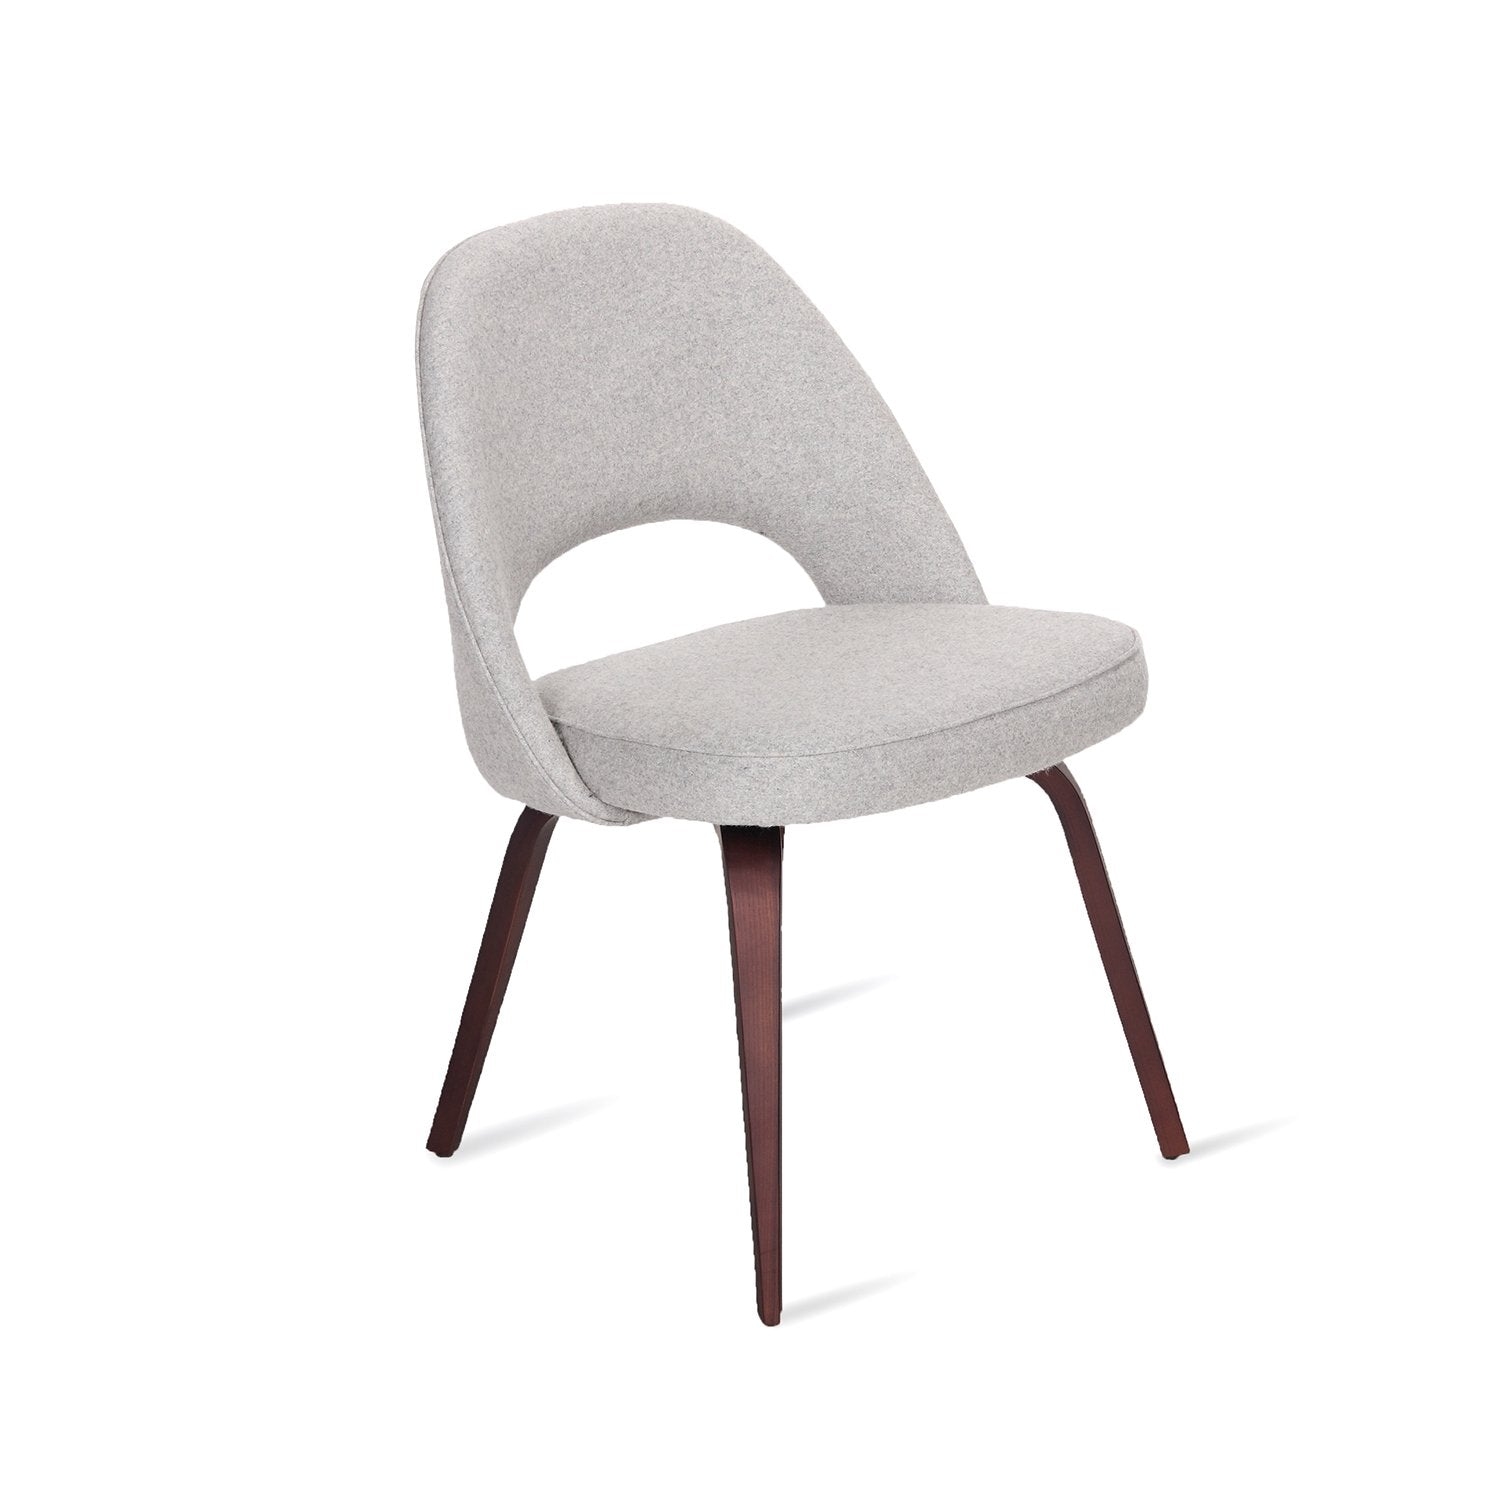 [FB9029LGREY] Rozek Side Chair